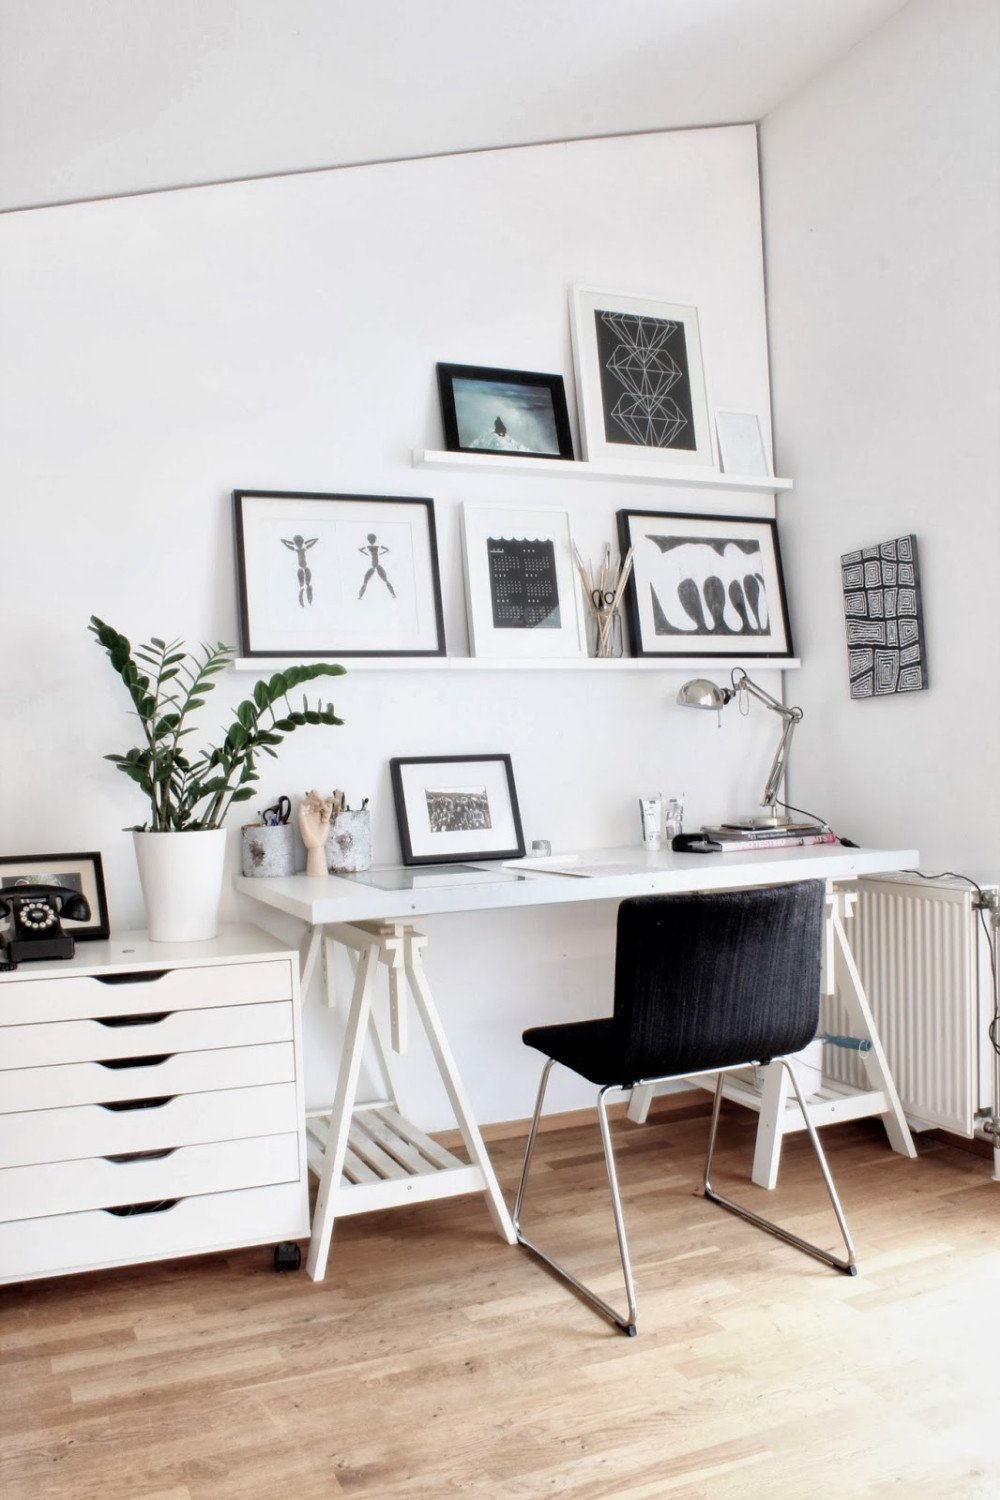 Black and White Office Decor Beautiful Interior Exquisite Home Office Images From Scandinavian Design Blogs Using White Wooden Wall